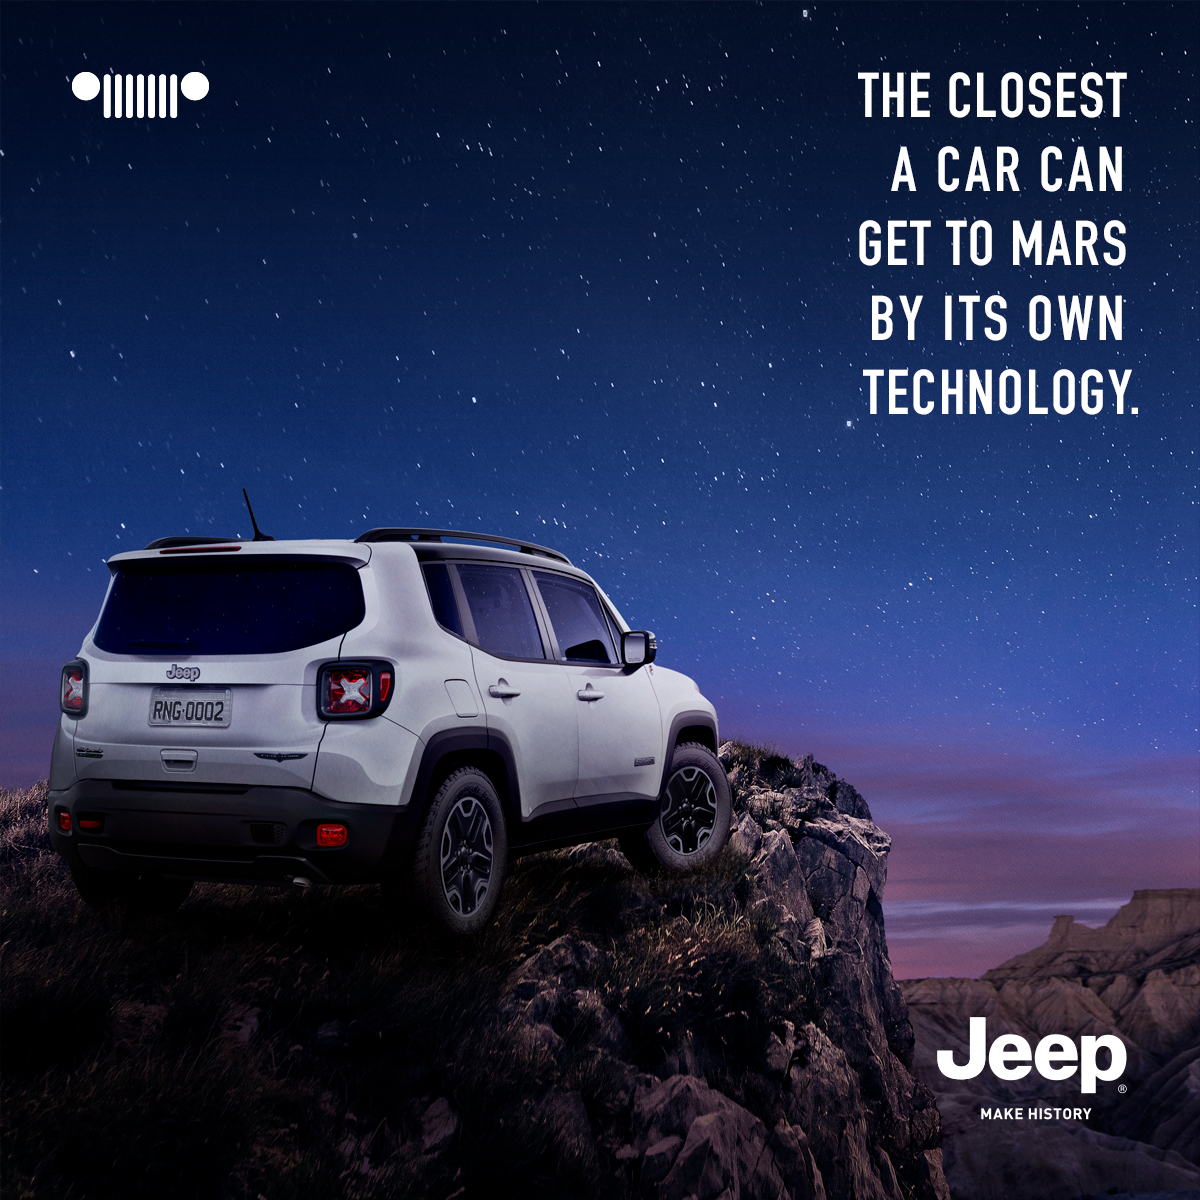 Jeep Print Ad - The Closest a Car Can Get to Mars by its Own Technology